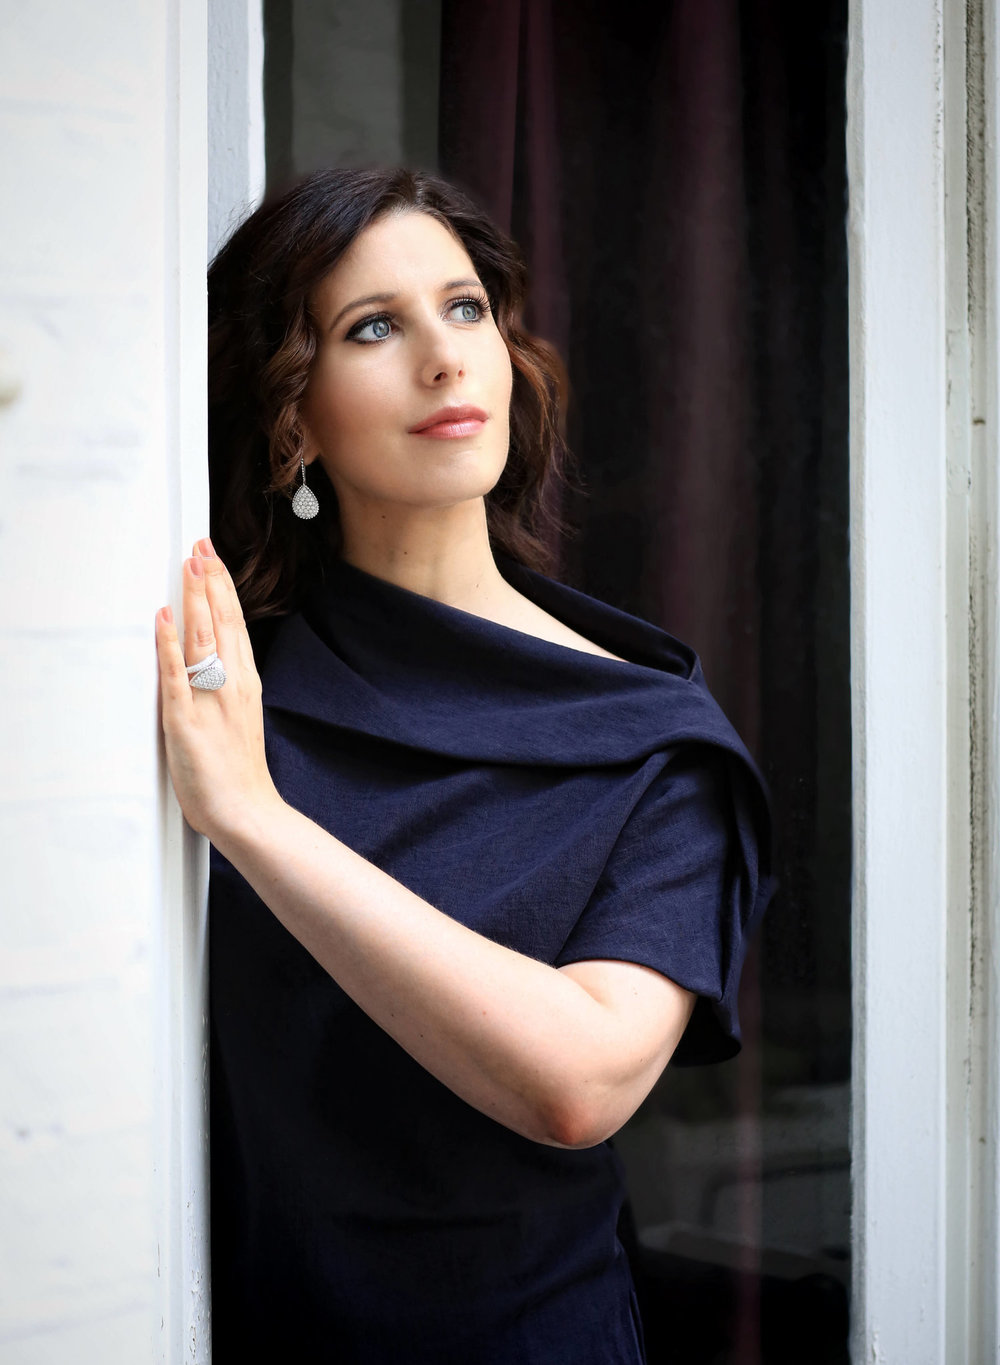 Ellie Dehn discusses her title role in SF Opera's 'Arabella' - HOODLINEAmerican soprano Ellie Dehn sings the title role of 'Arabella'. A native of Minnesota, she has sung many roles to great acclaim with SF Opera (Musetta in